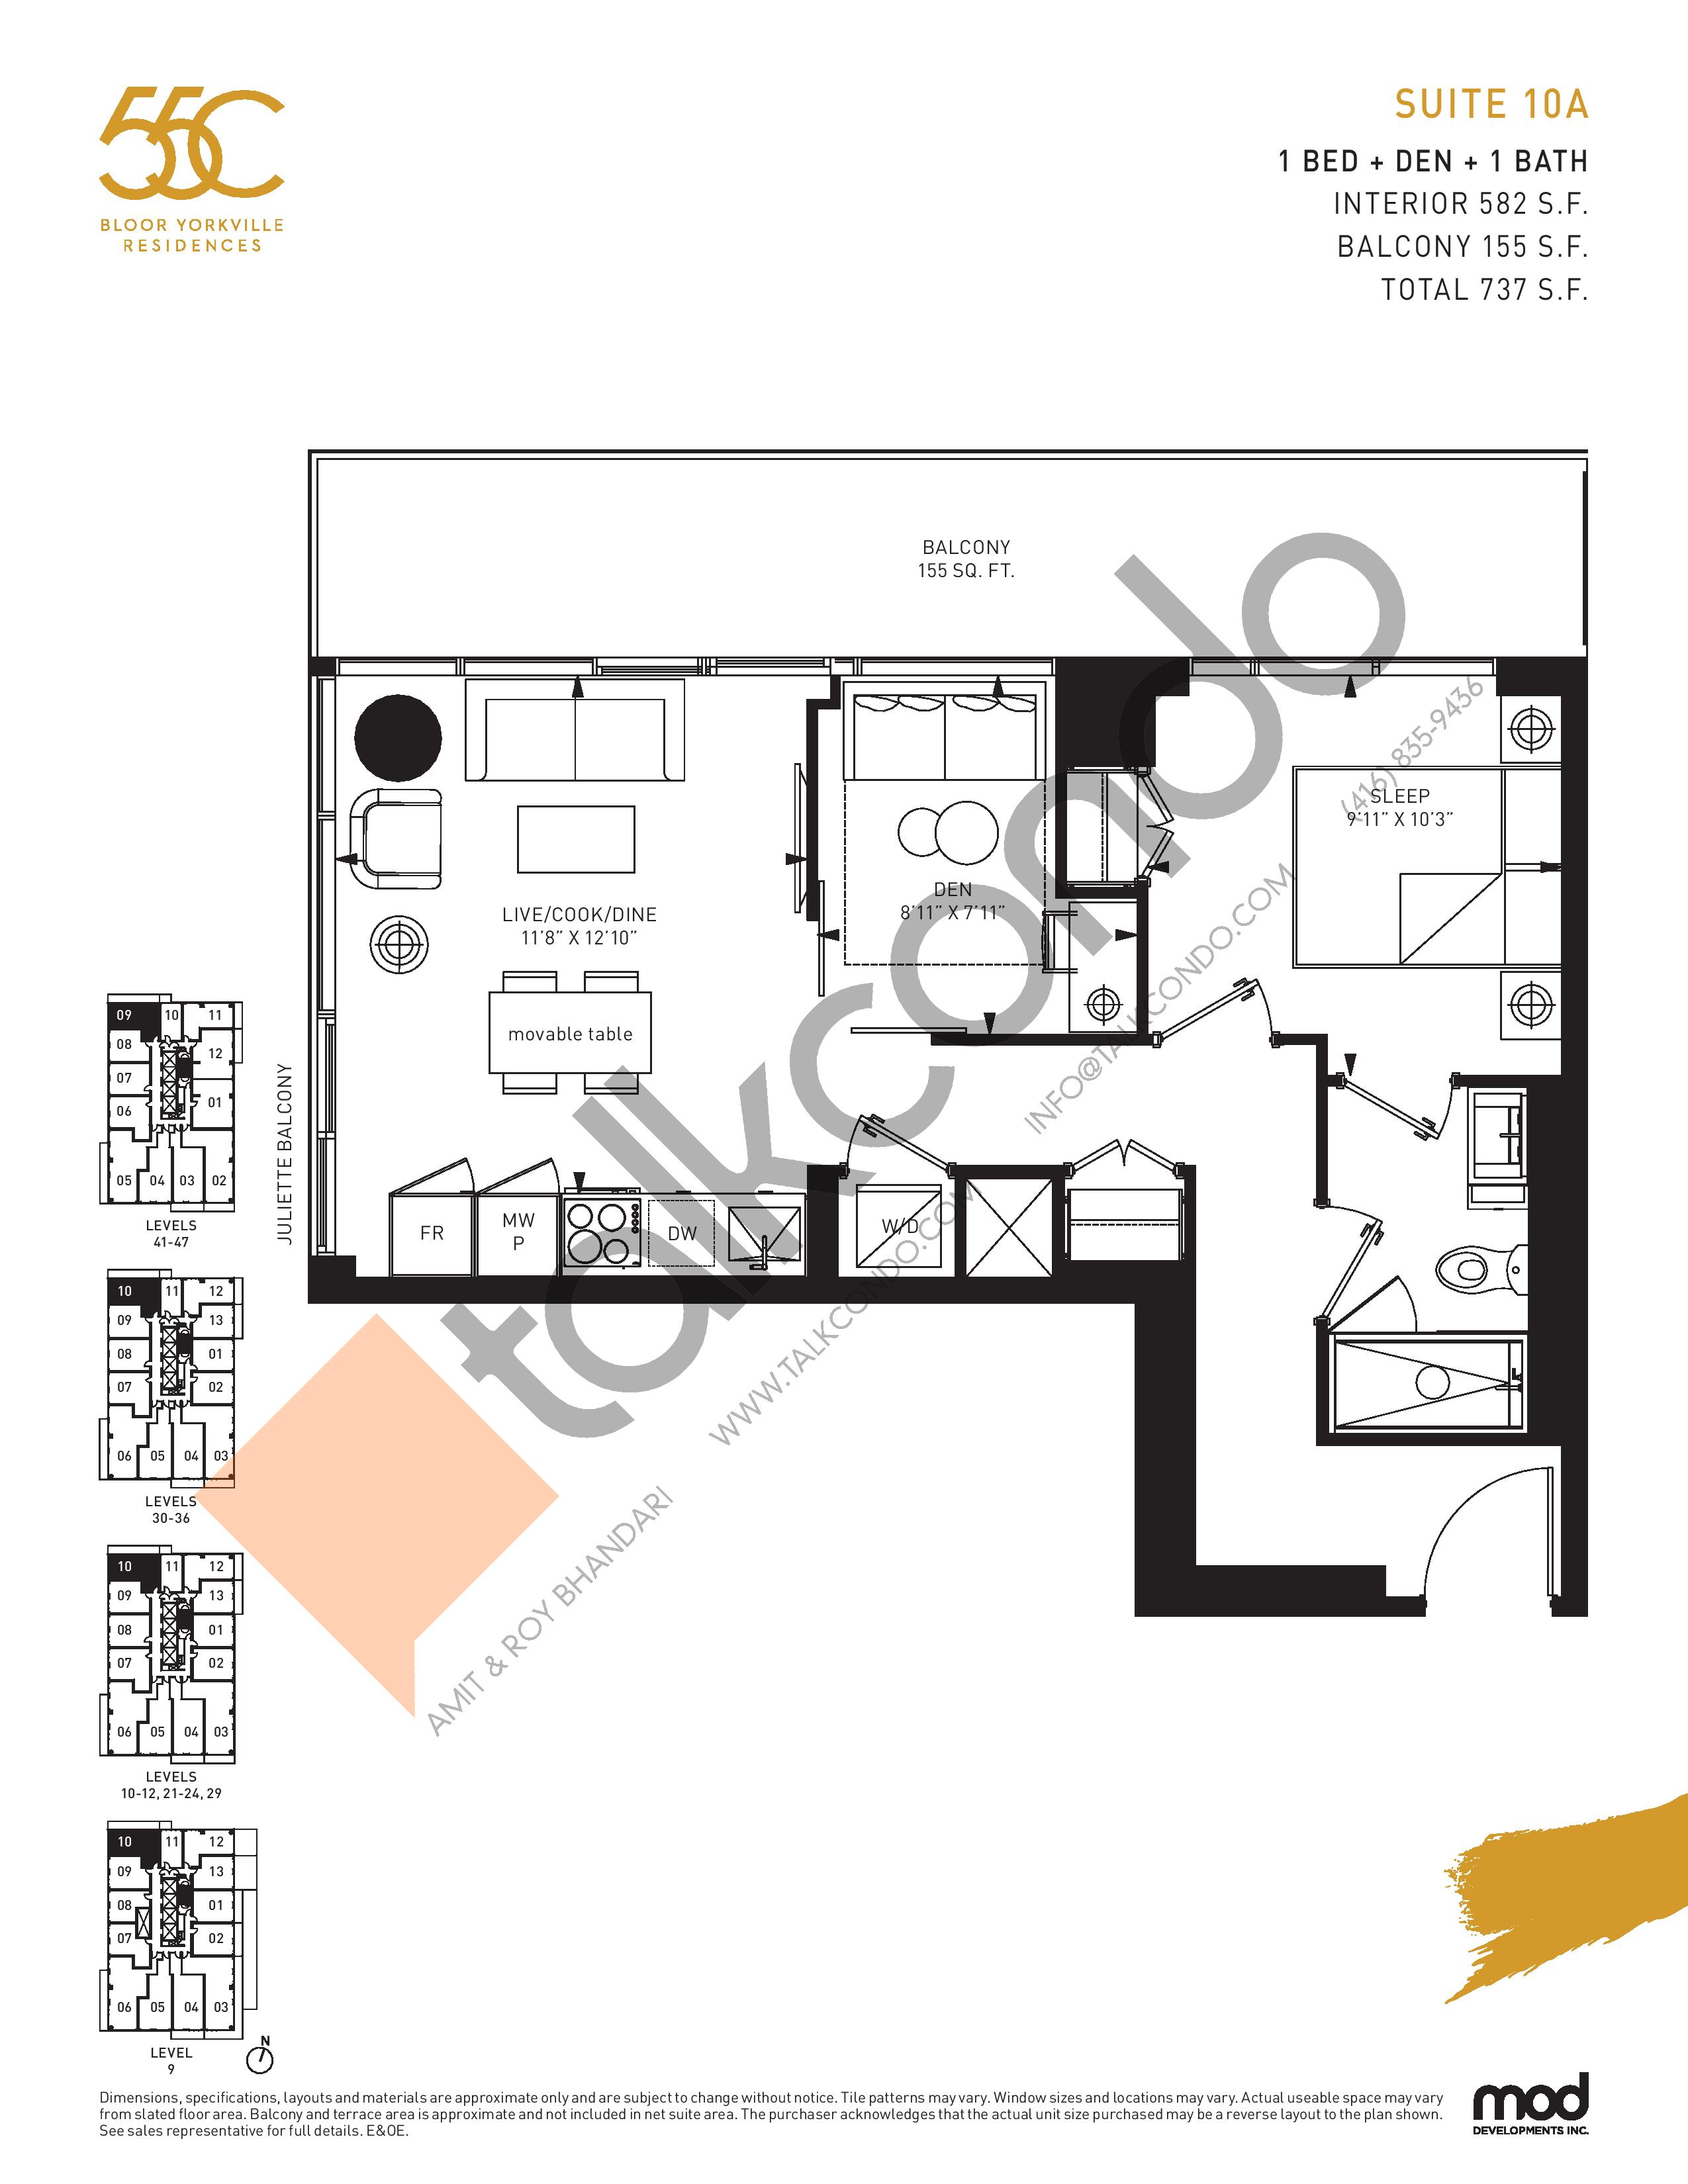 Suite 10A Floor Plan at 55C Condos - 582 sq.ft